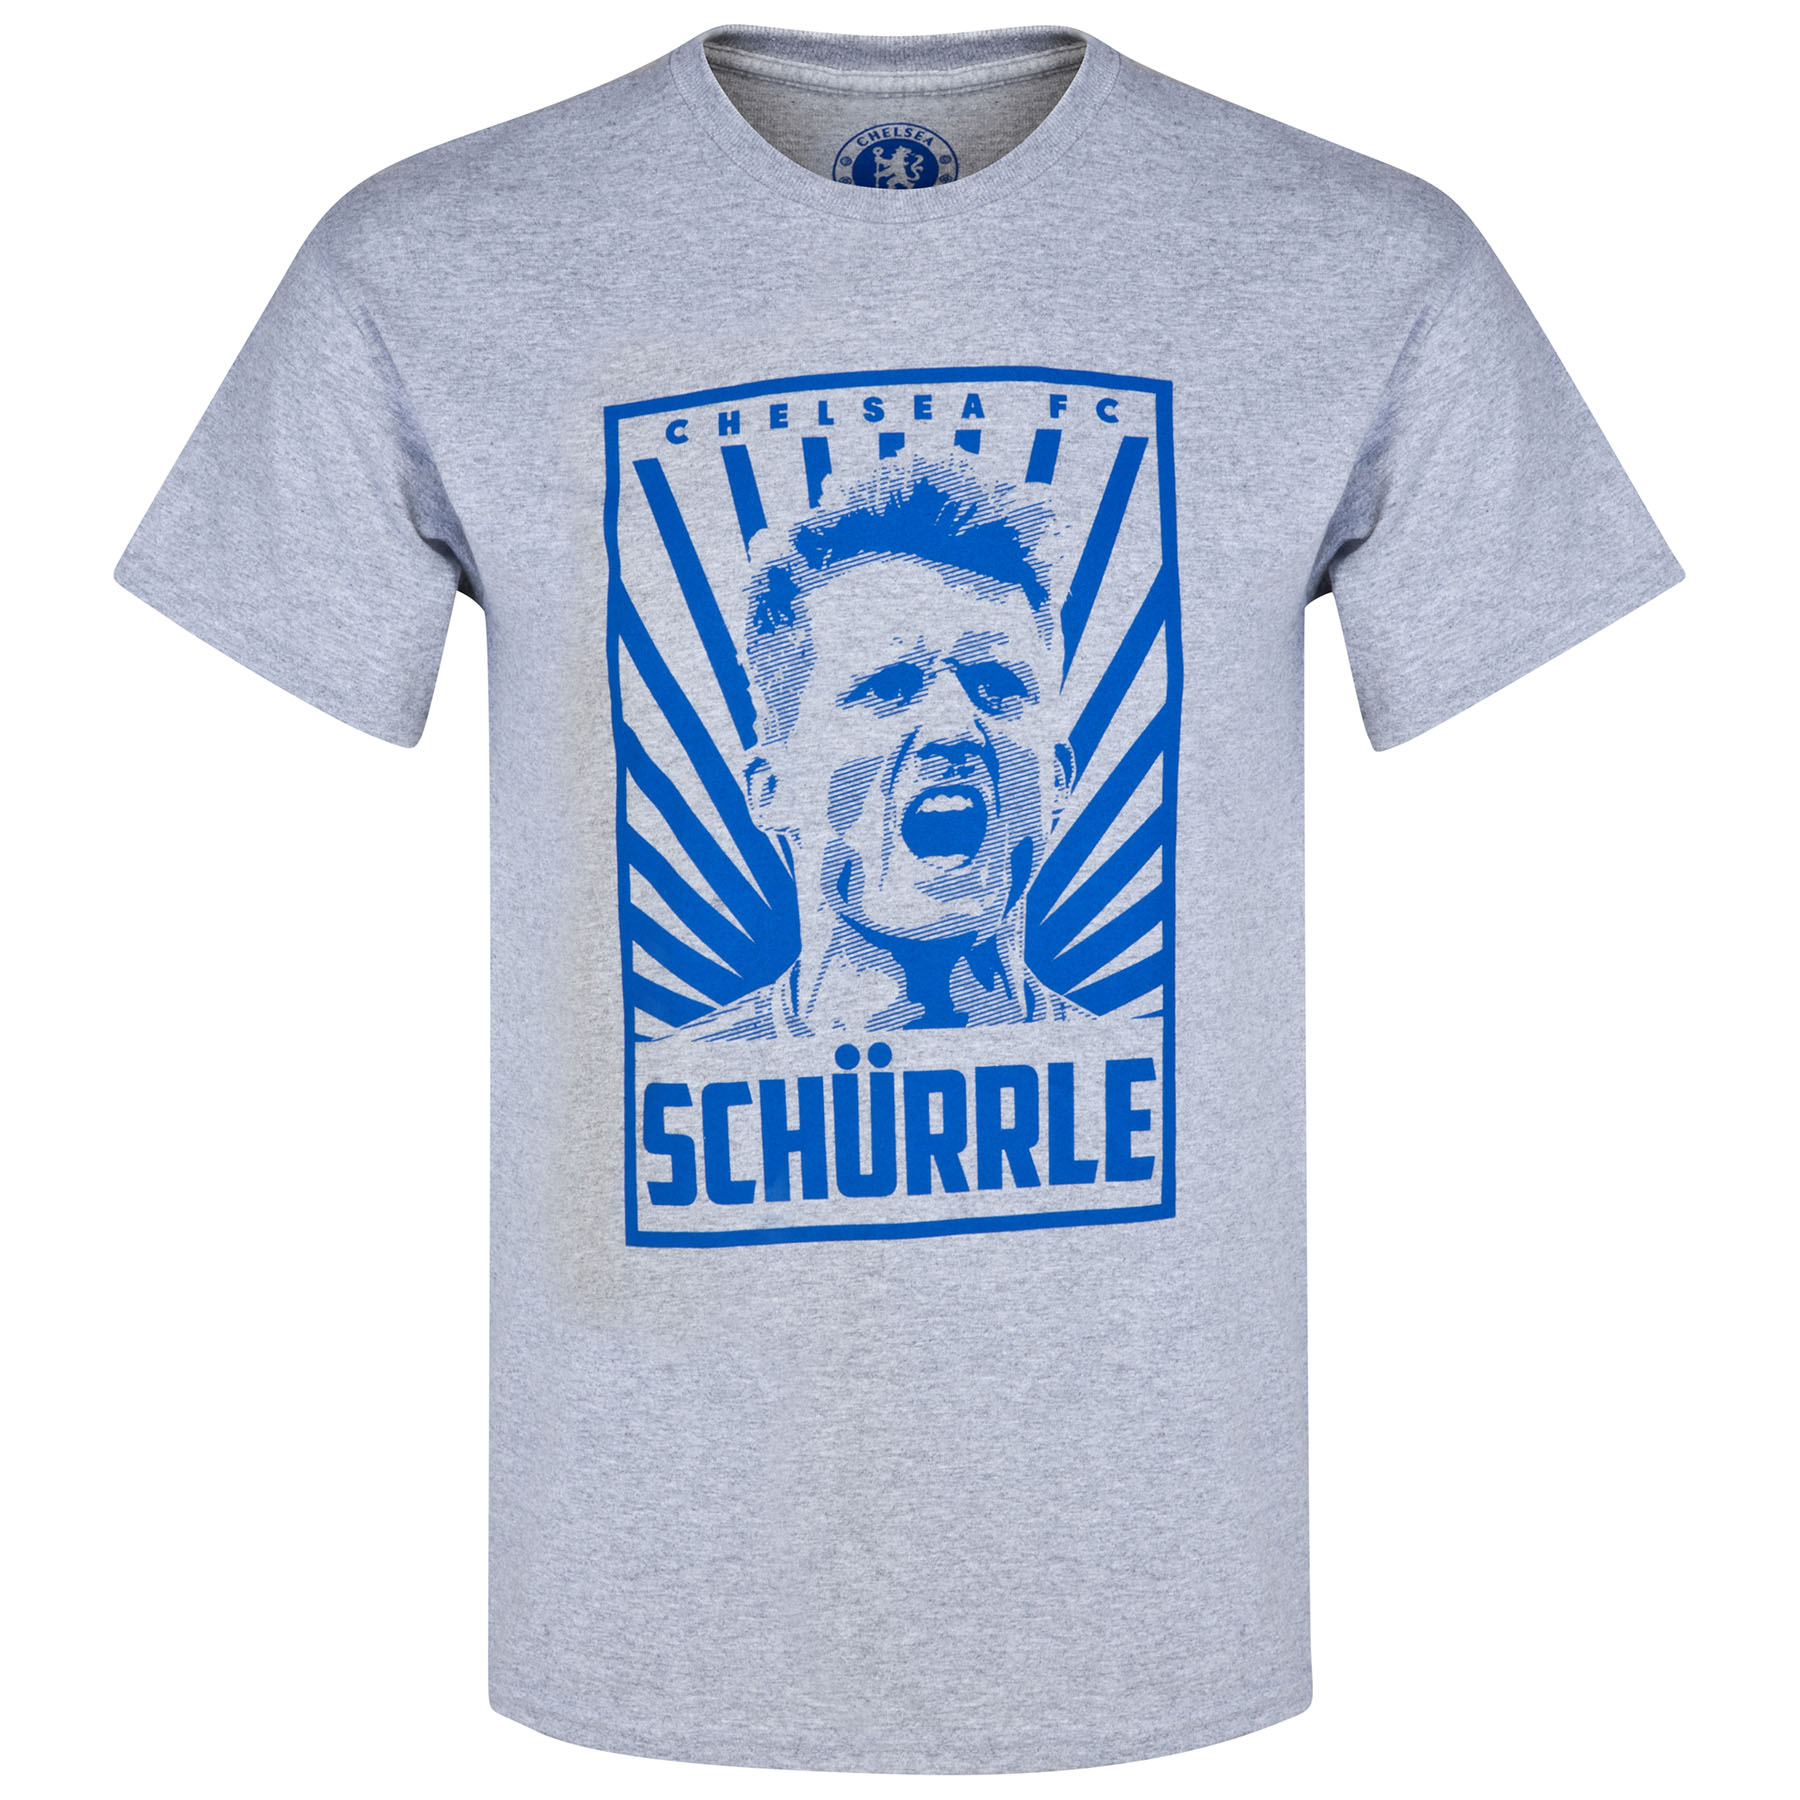 Chelsea Schurrle T-Shirt - Sports Grey - Mens